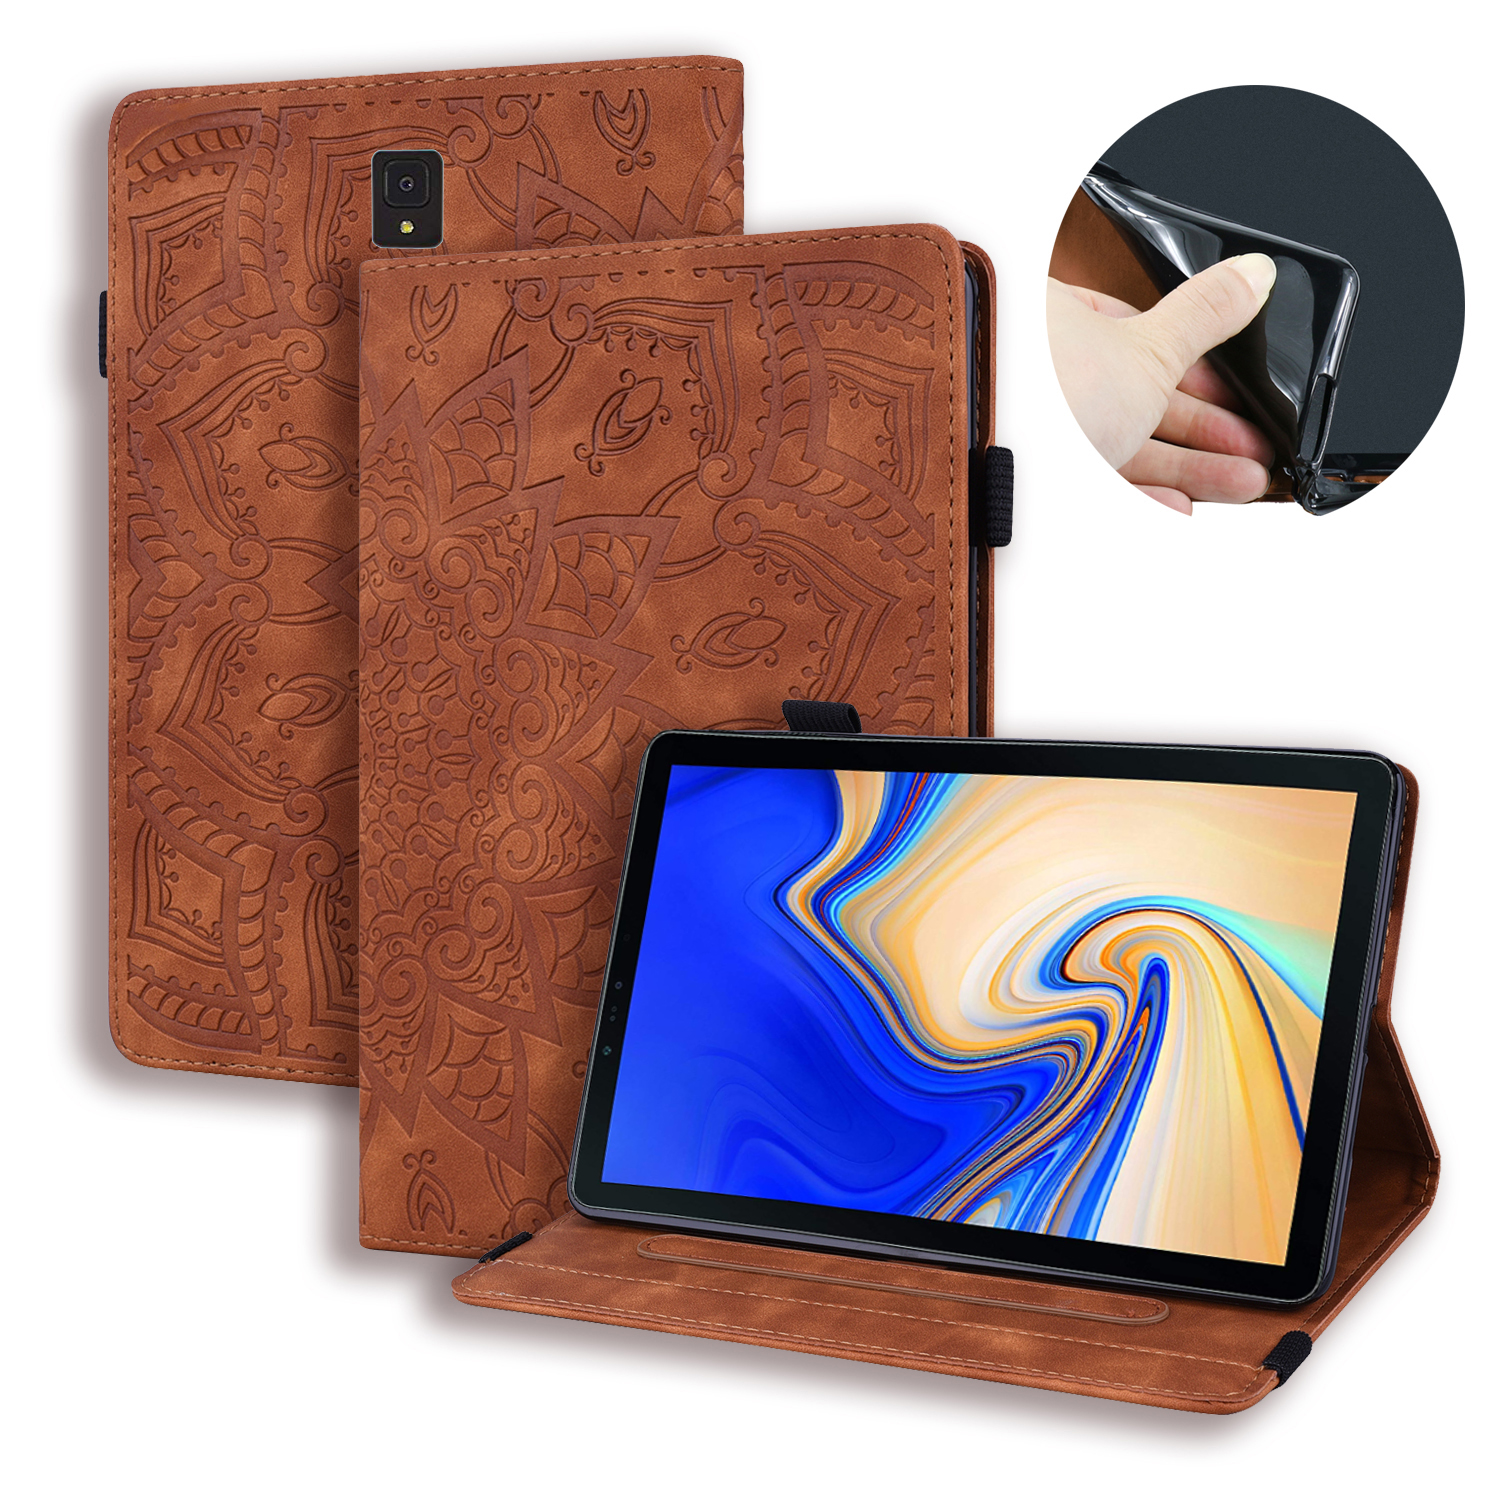 3D Vintage Case For Samsung Galaxy Tab S4 10.5 T830 T835 SM-T835 2018 Embossed PU Leather Stand Wallet Tablet Cover Capa + Pen